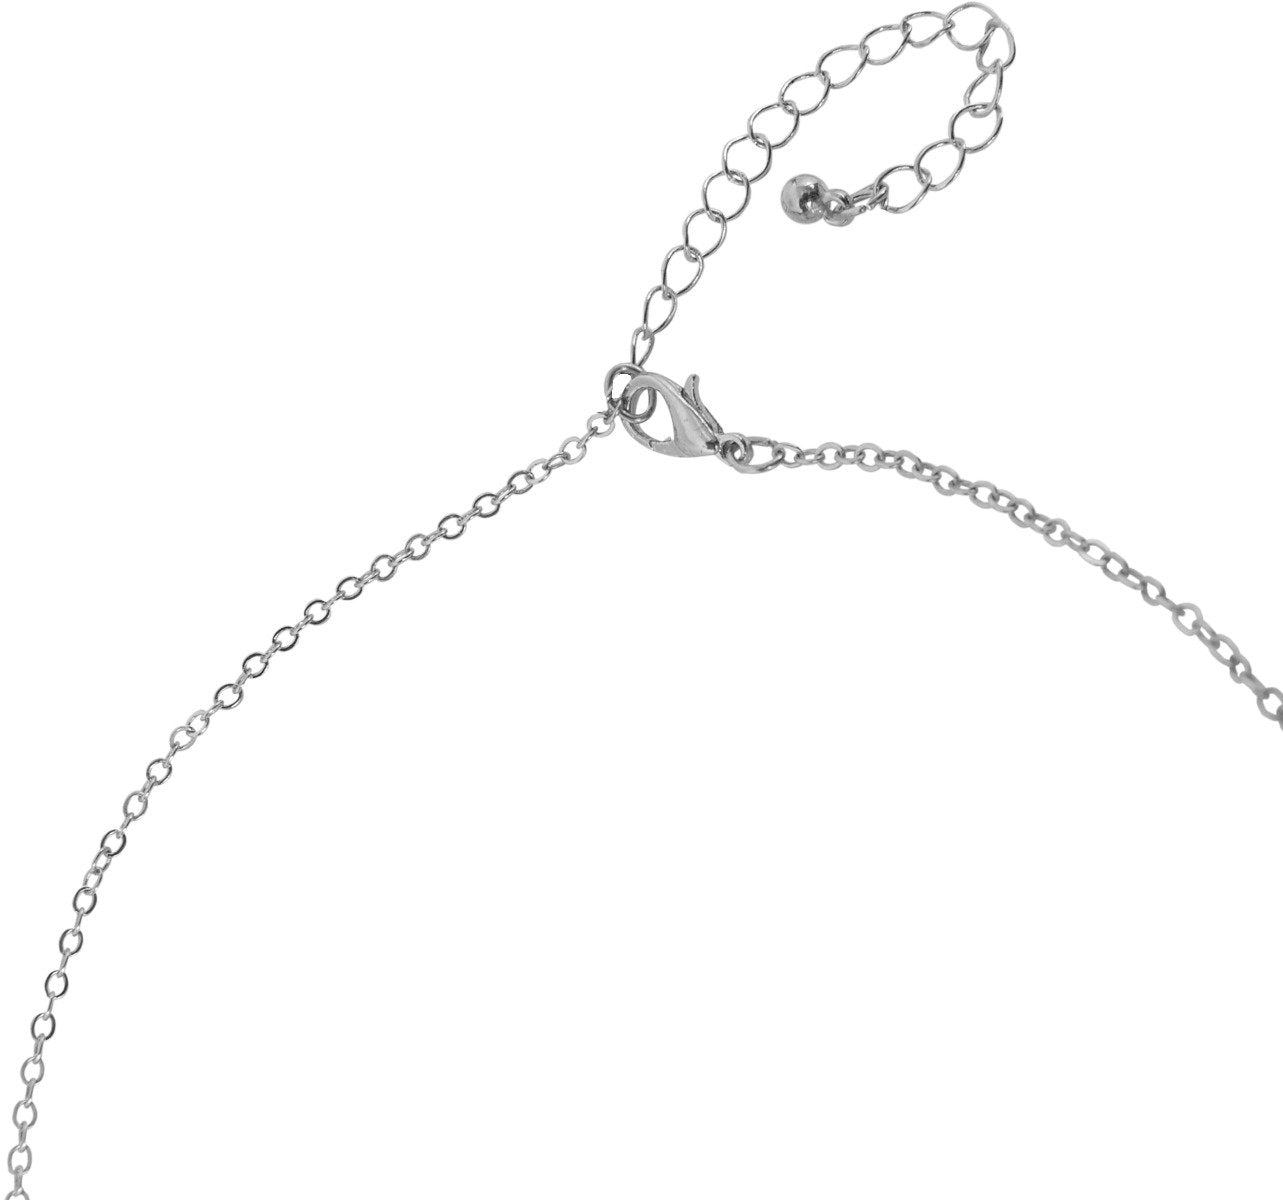 Humble Chic Women's Y-Chain Bar Necklace - Adjustable Long Thin Delicate Chevron Choker Lariat, Silver-Tone